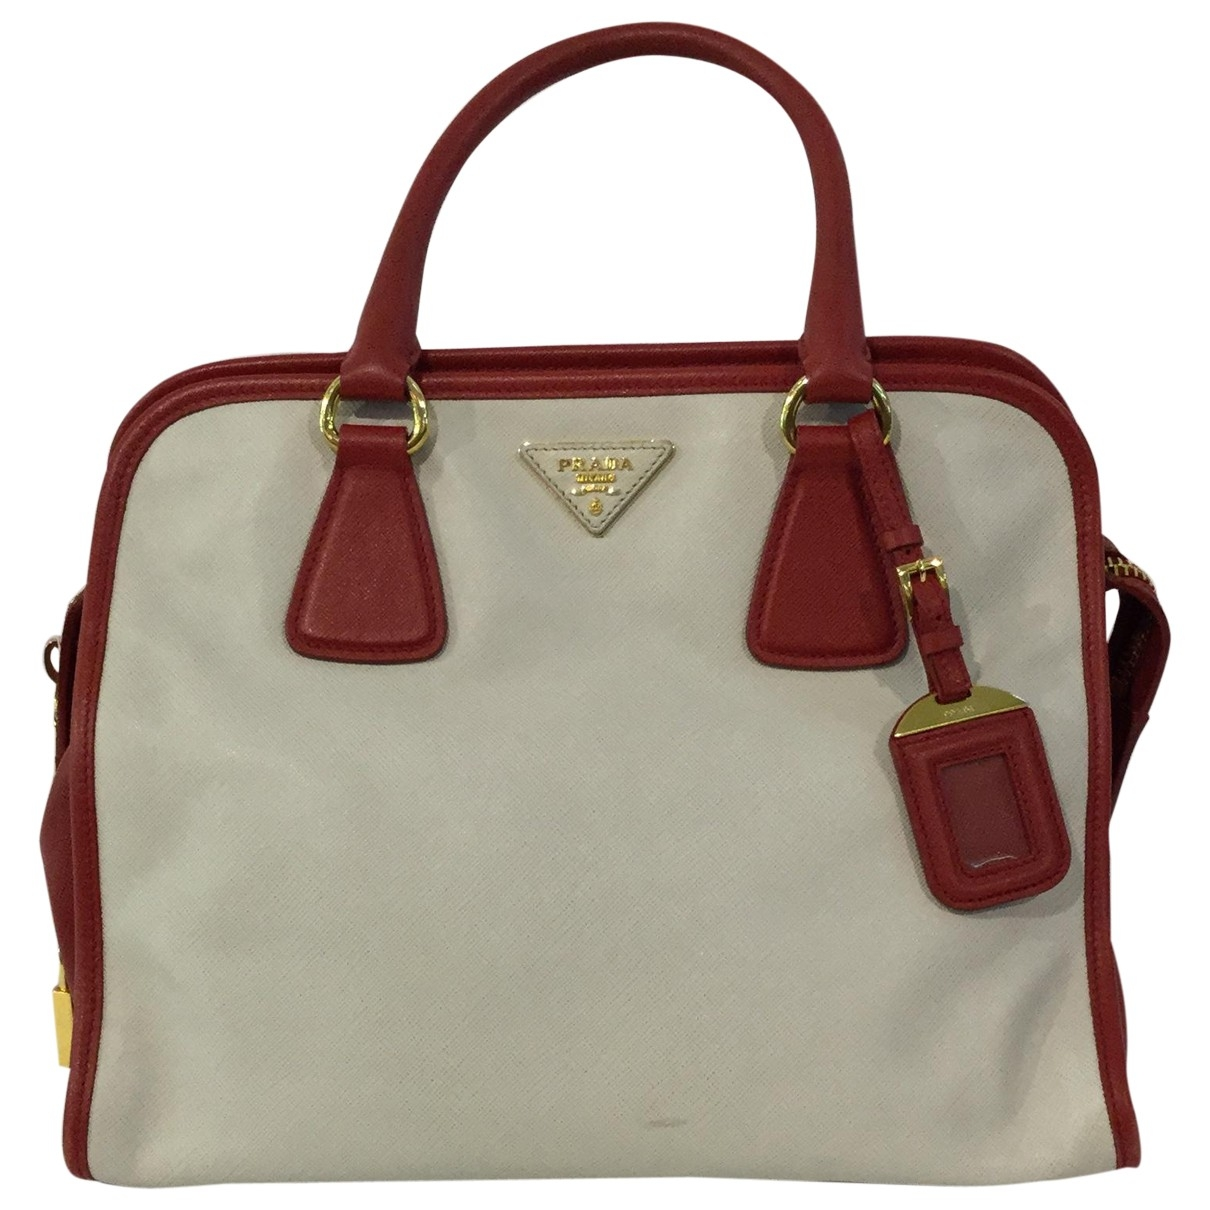 Prada \N White Leather handbag for Women \N